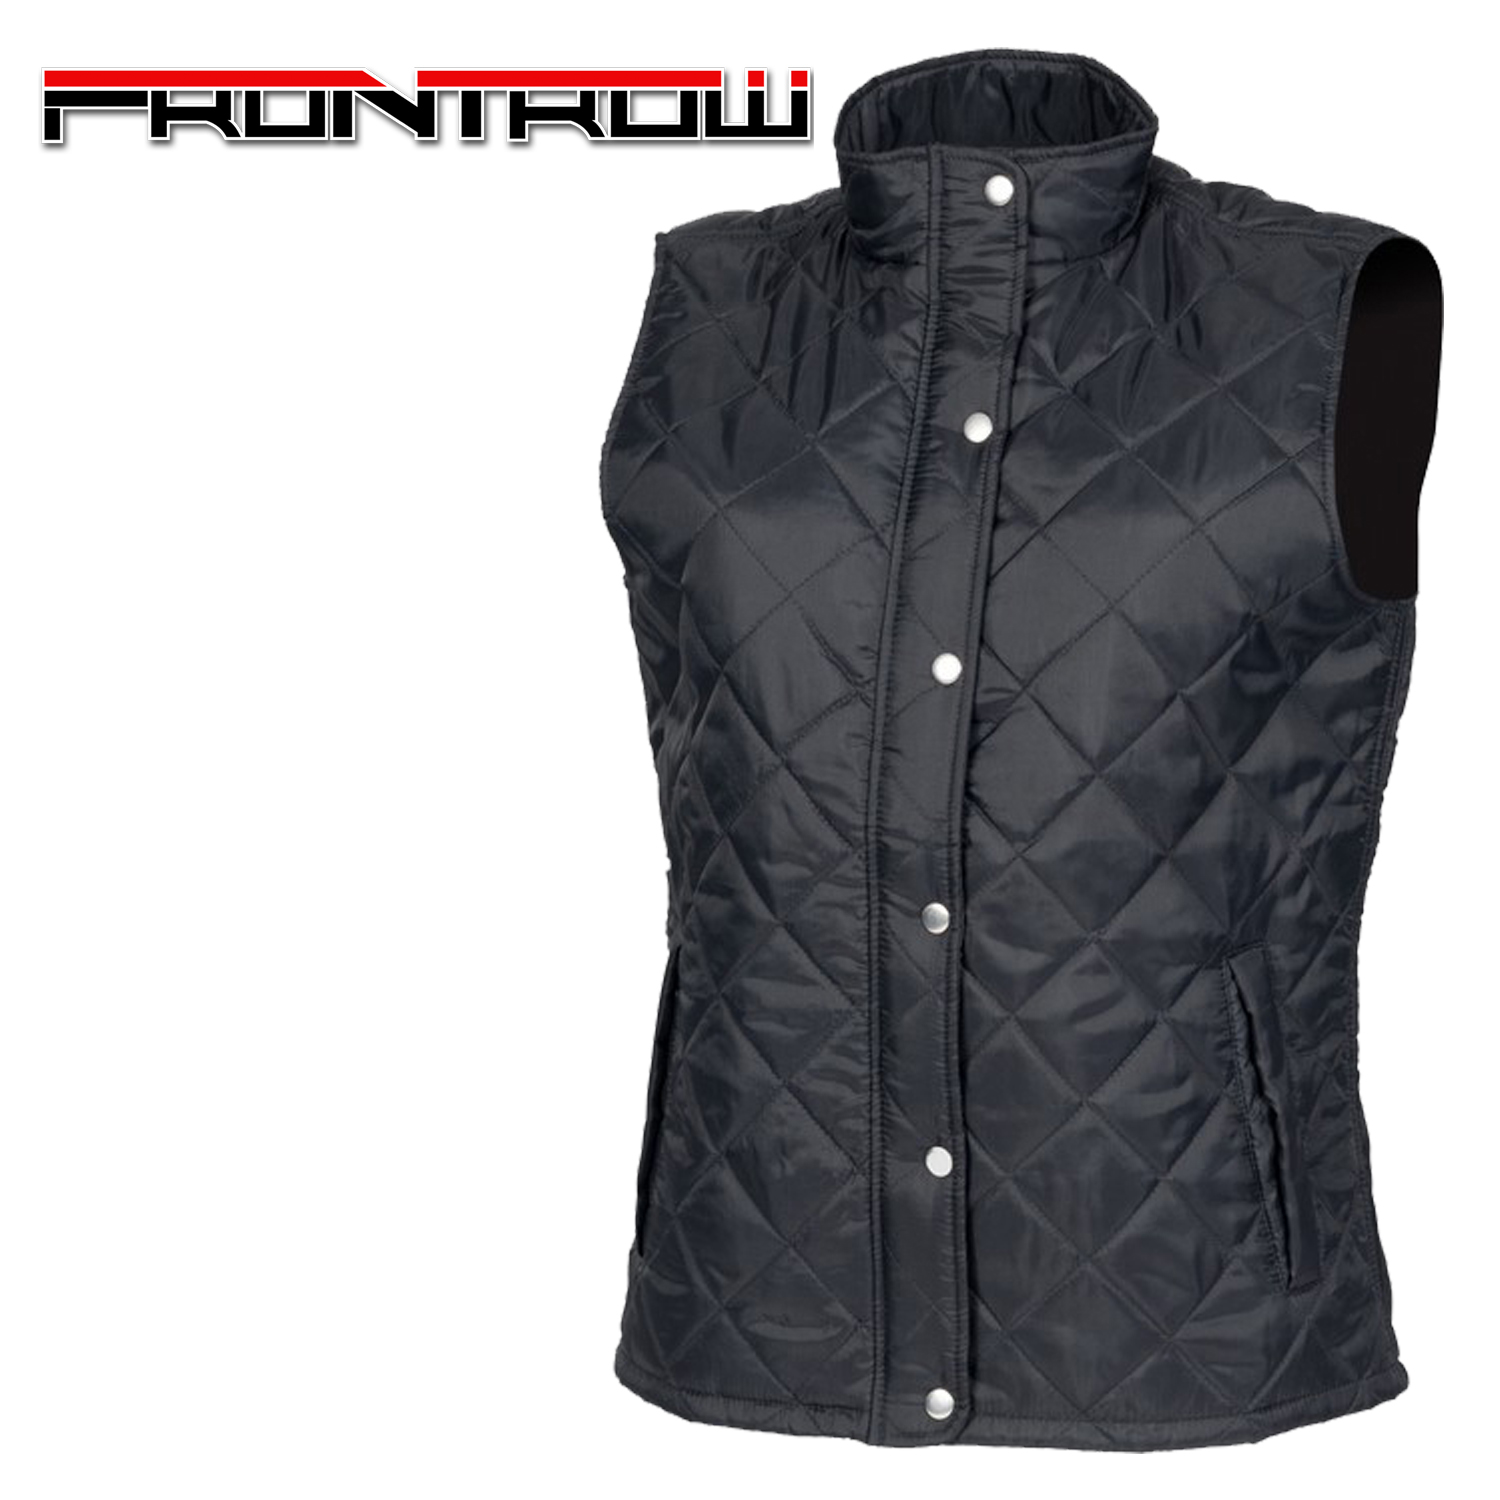 Front Row Women/'s Diamond Quilted Body Warmer Padded Zip Up Gilet Winter Jacket